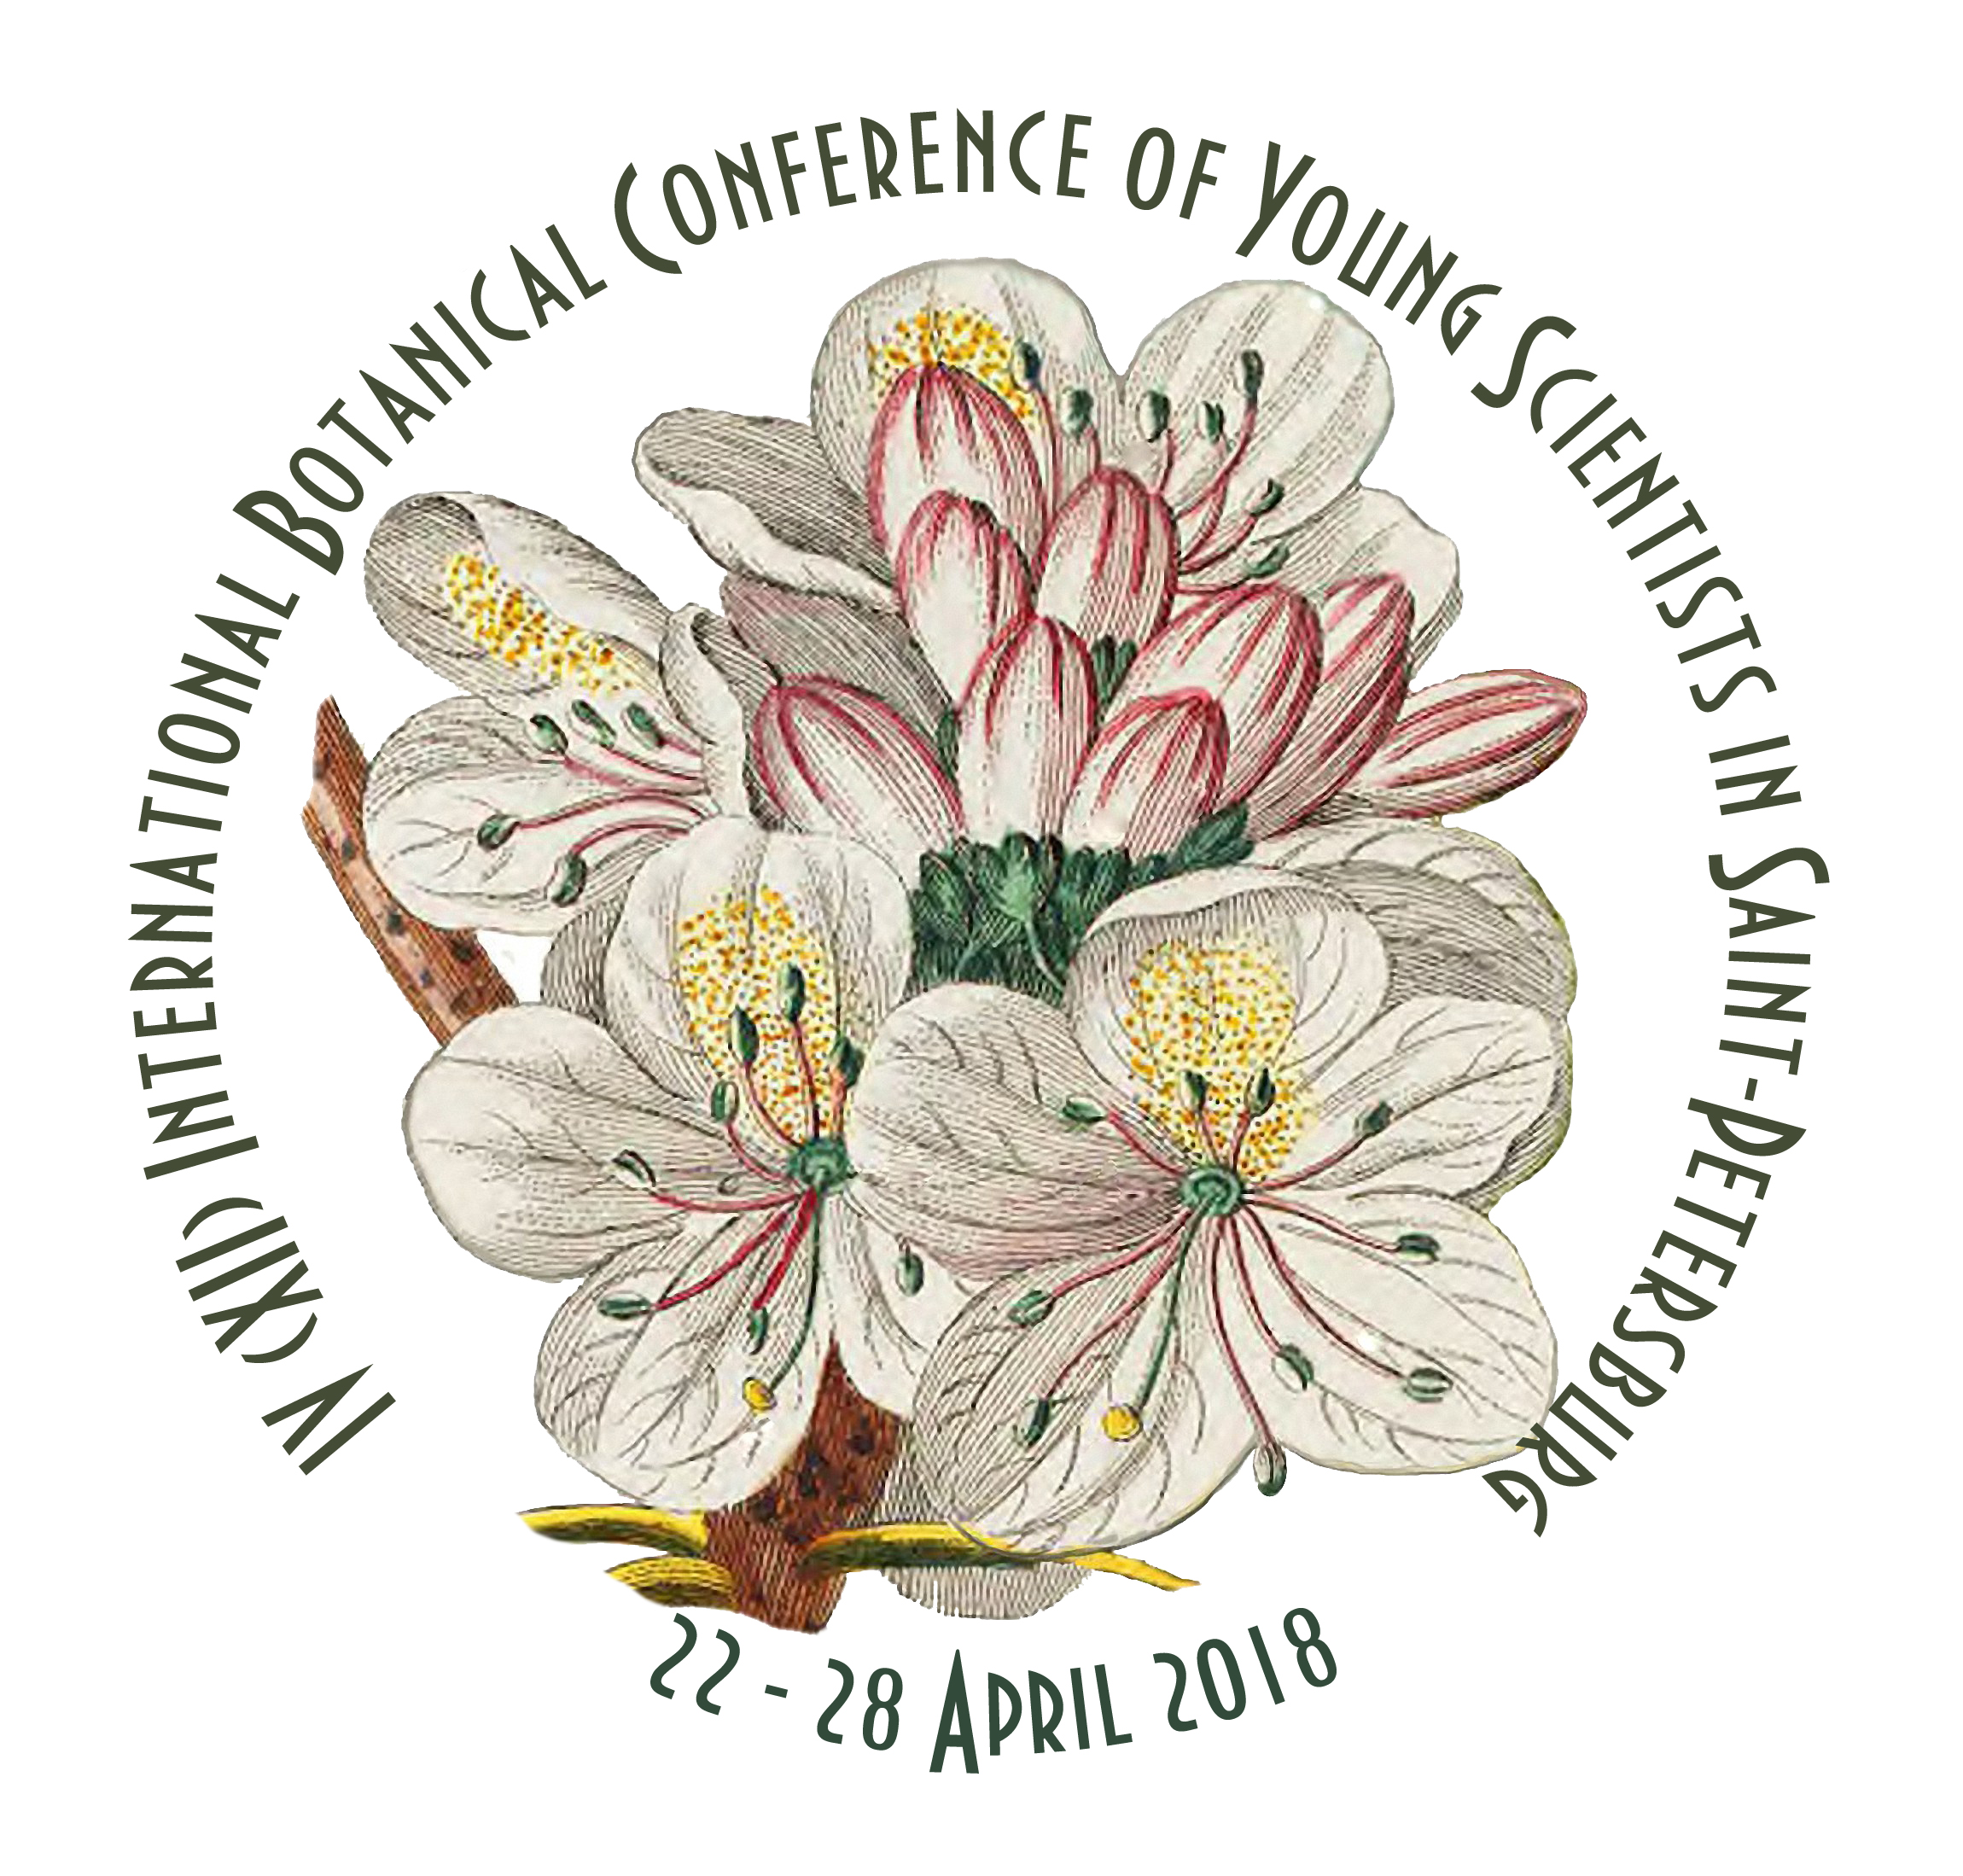 IV (XII) International Botanical Conference of Young Scientists